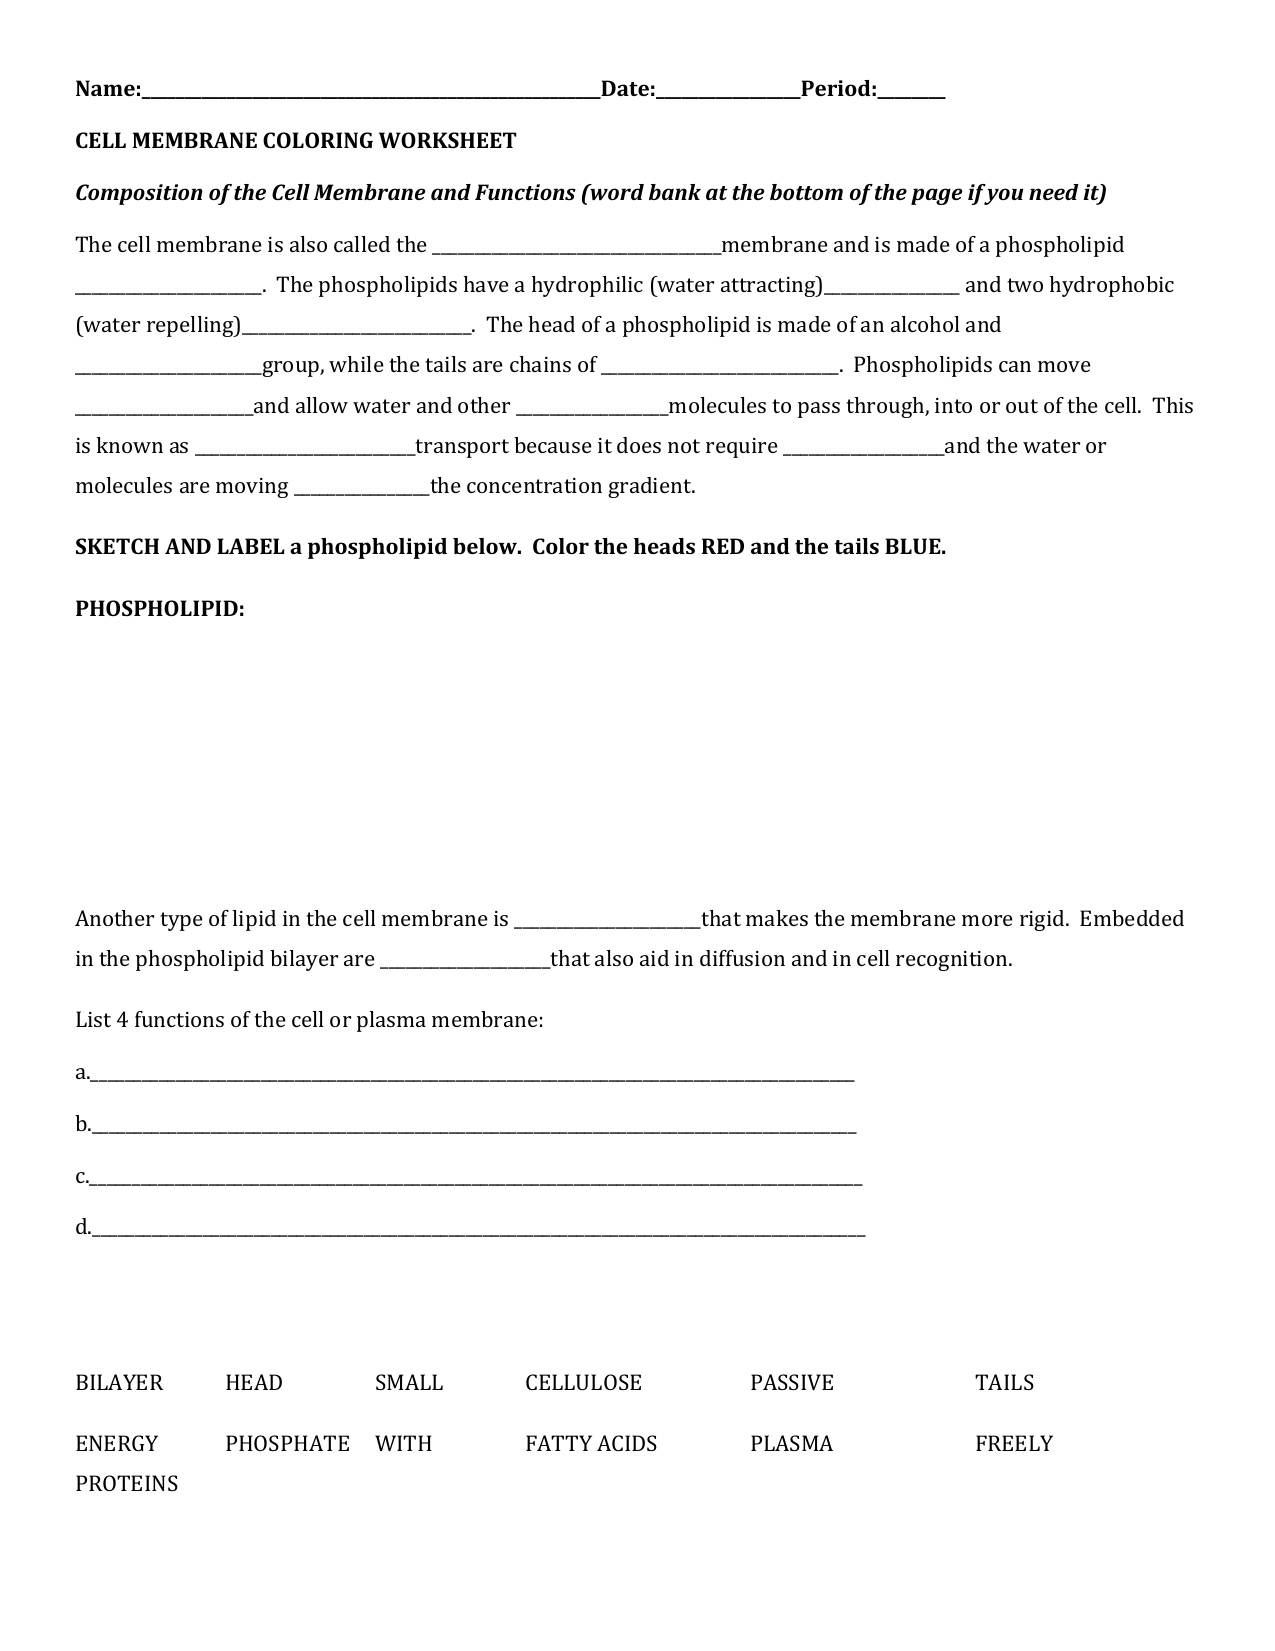 File – Cell Membrane Coloring Worksheet Answer Key